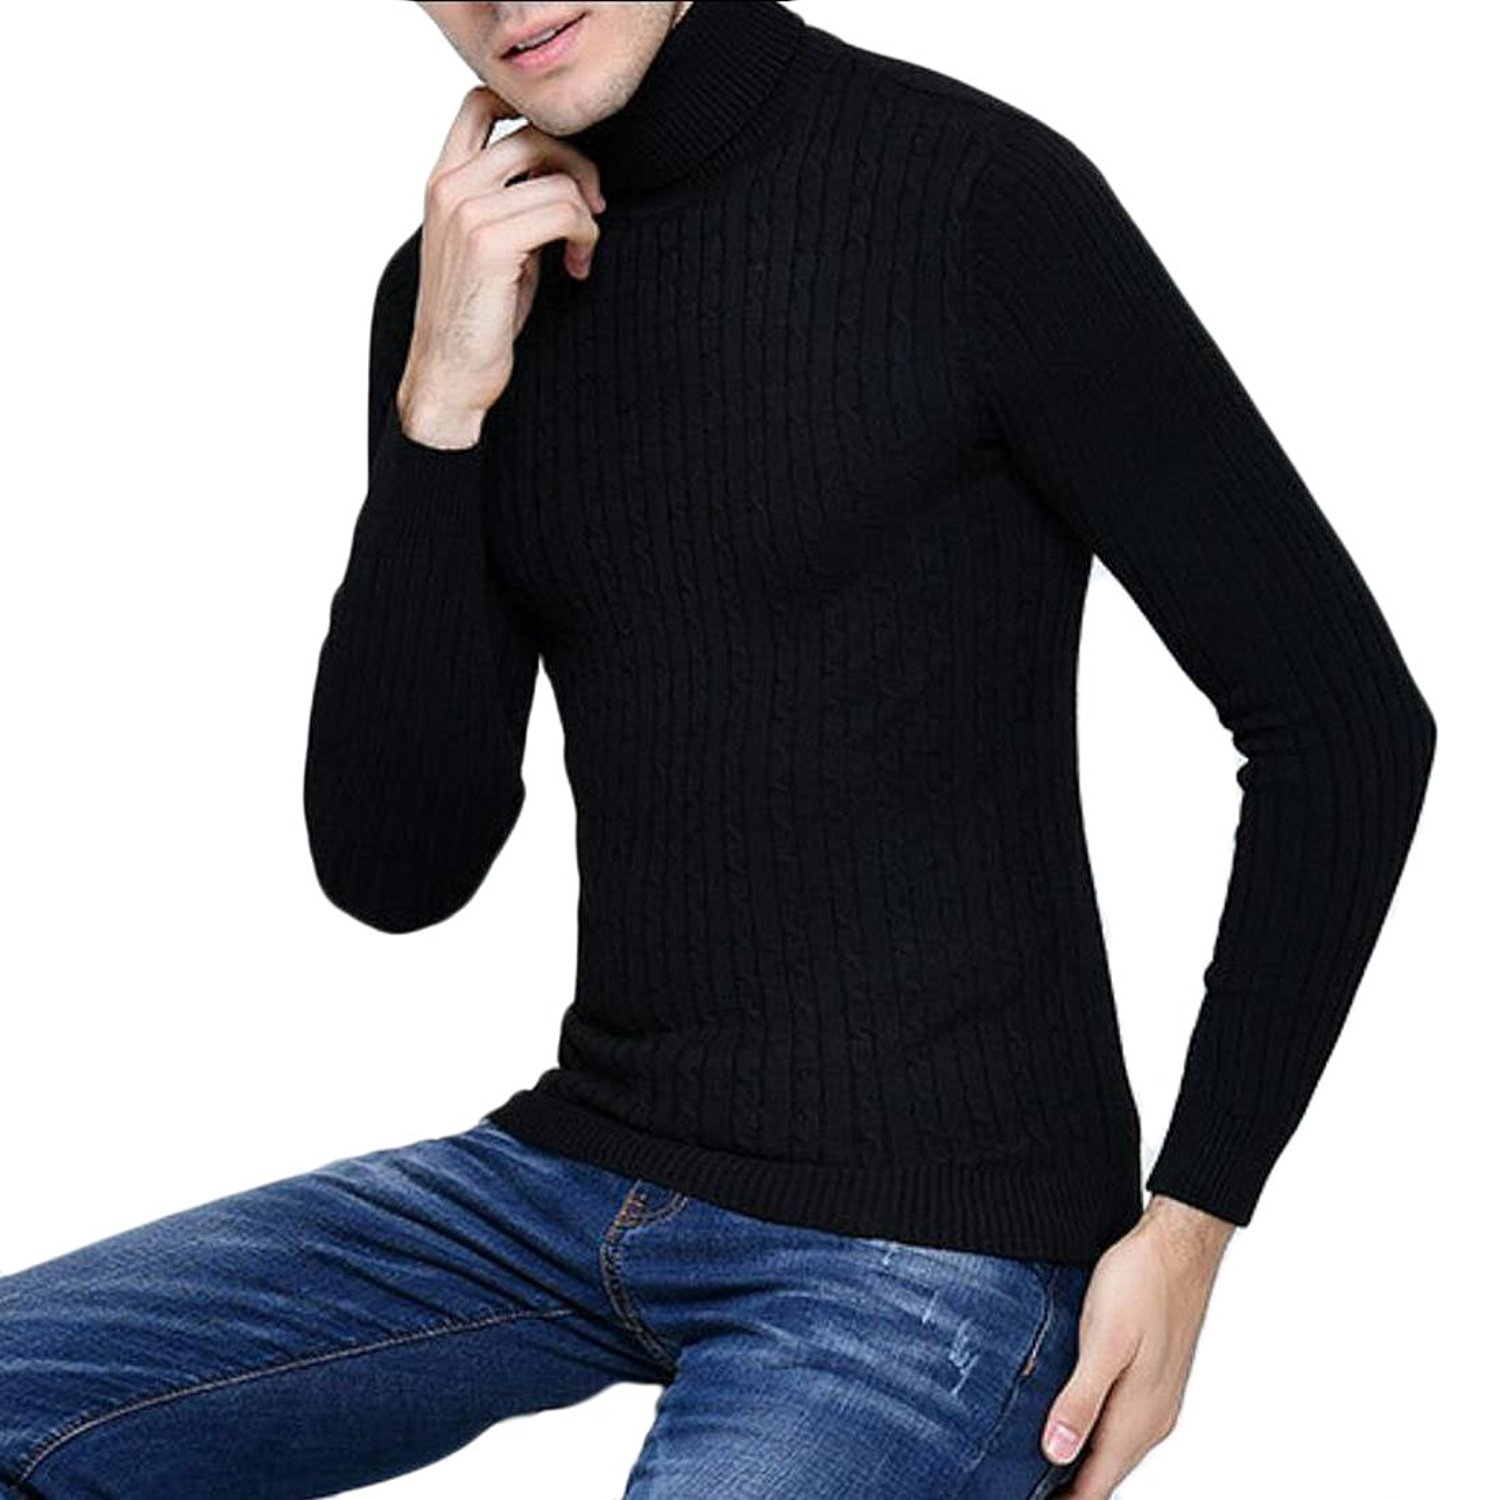 XQS Men's Fashion Slim Fit Solid Turtleneck Pullover Sweaters Pullover Tops